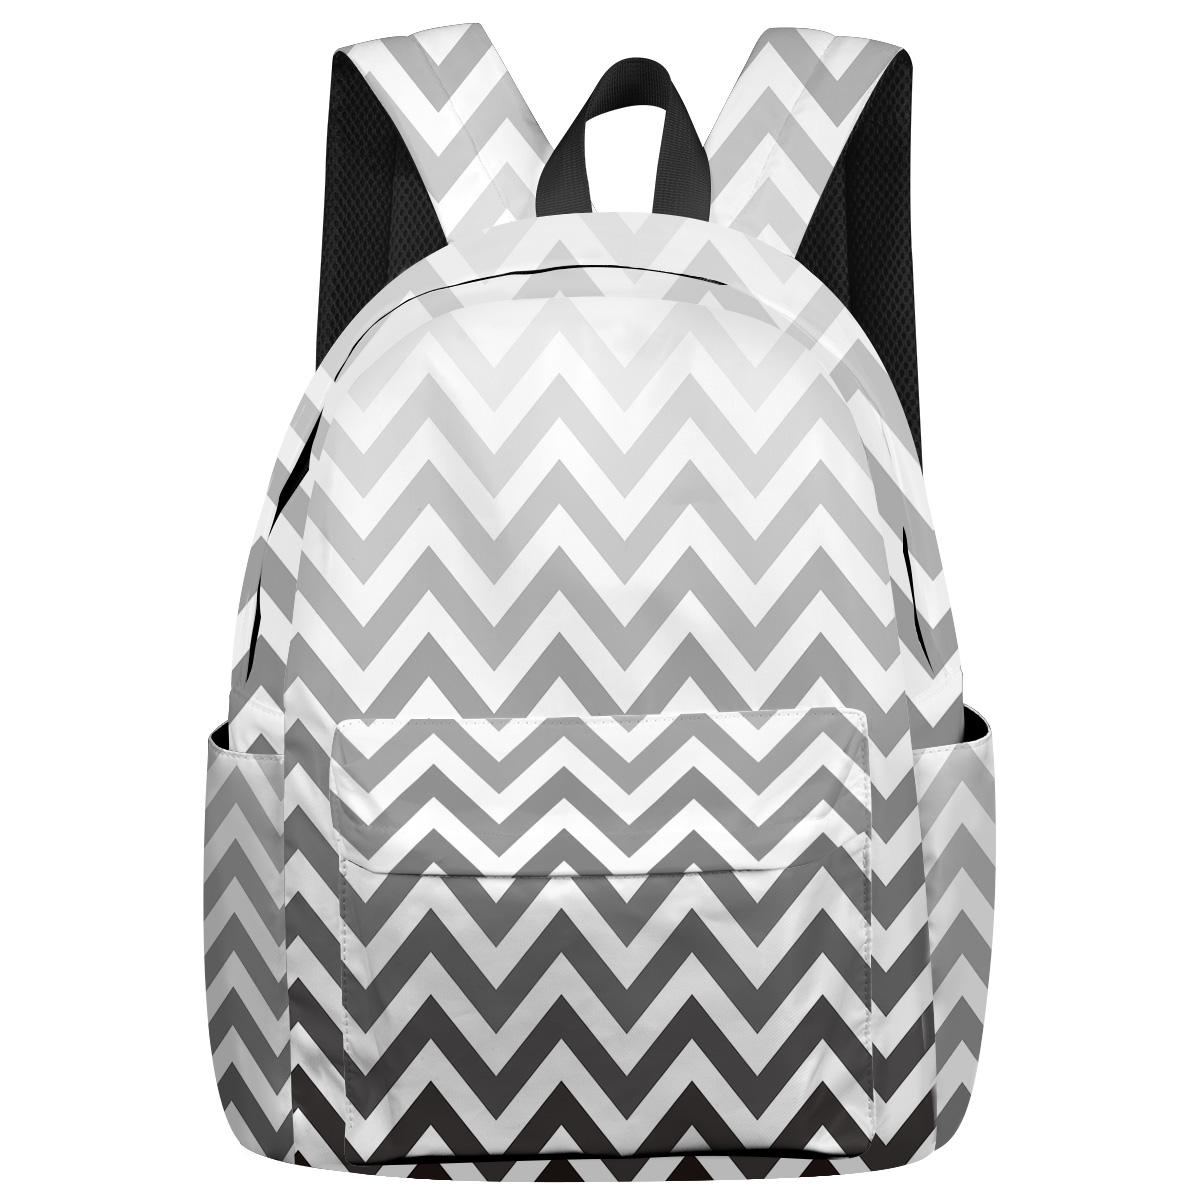 Geometric Gradient Ripple Soft And Comfortable Scratch Resistant Laptop Backpacks Business Daypack College Students Casual